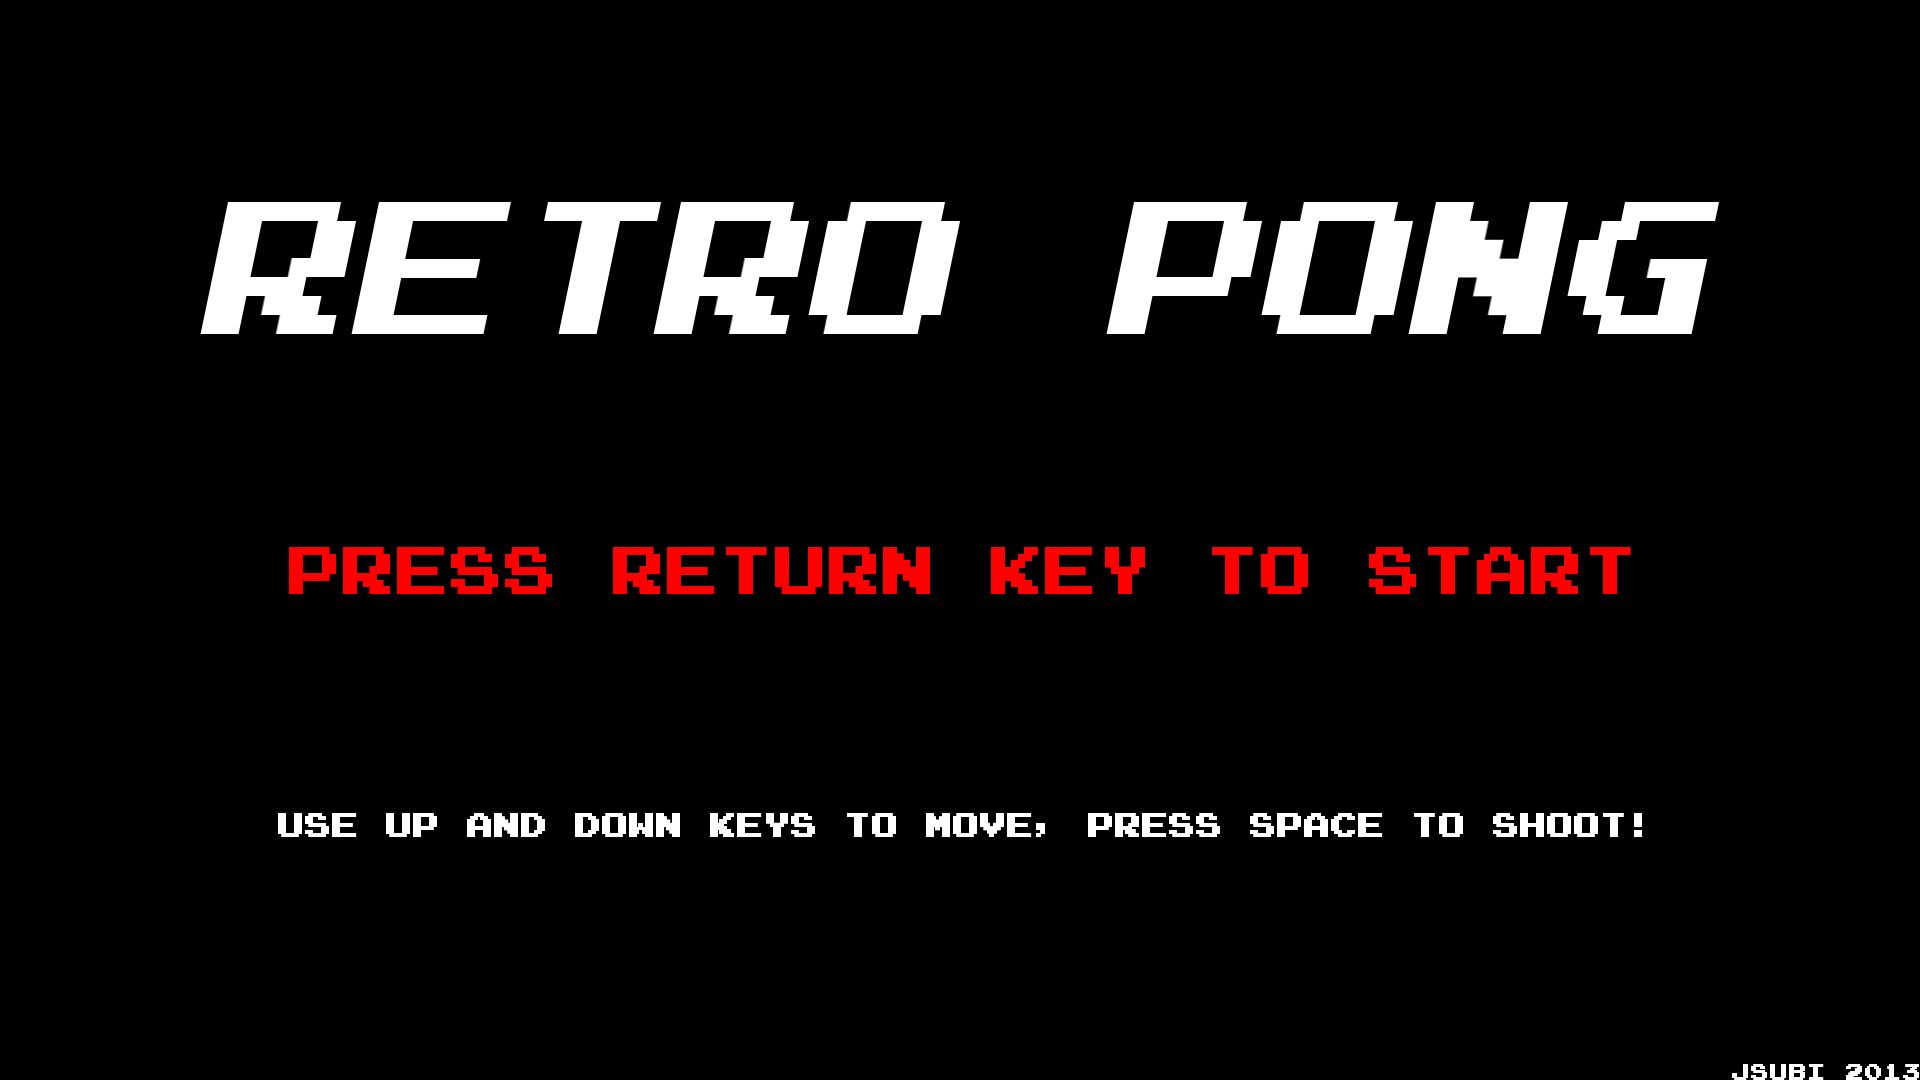 Download web tool or web app retropong to run in Linux online